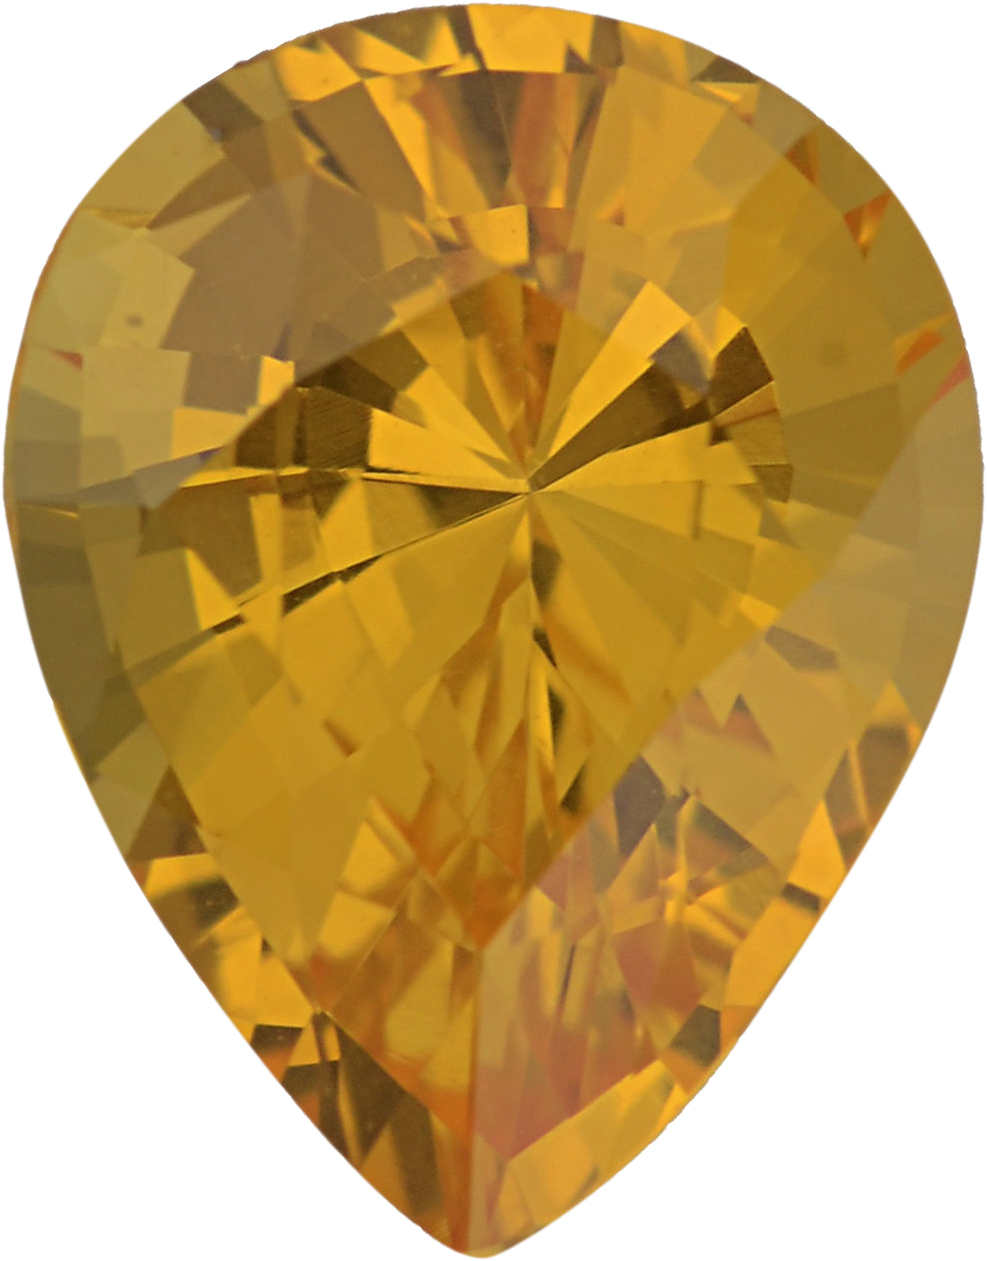 Special Sapphire Loose Gem in Pear Cut, Light Yellow, 7.47 x 5.83  mm, 1.21 Carats